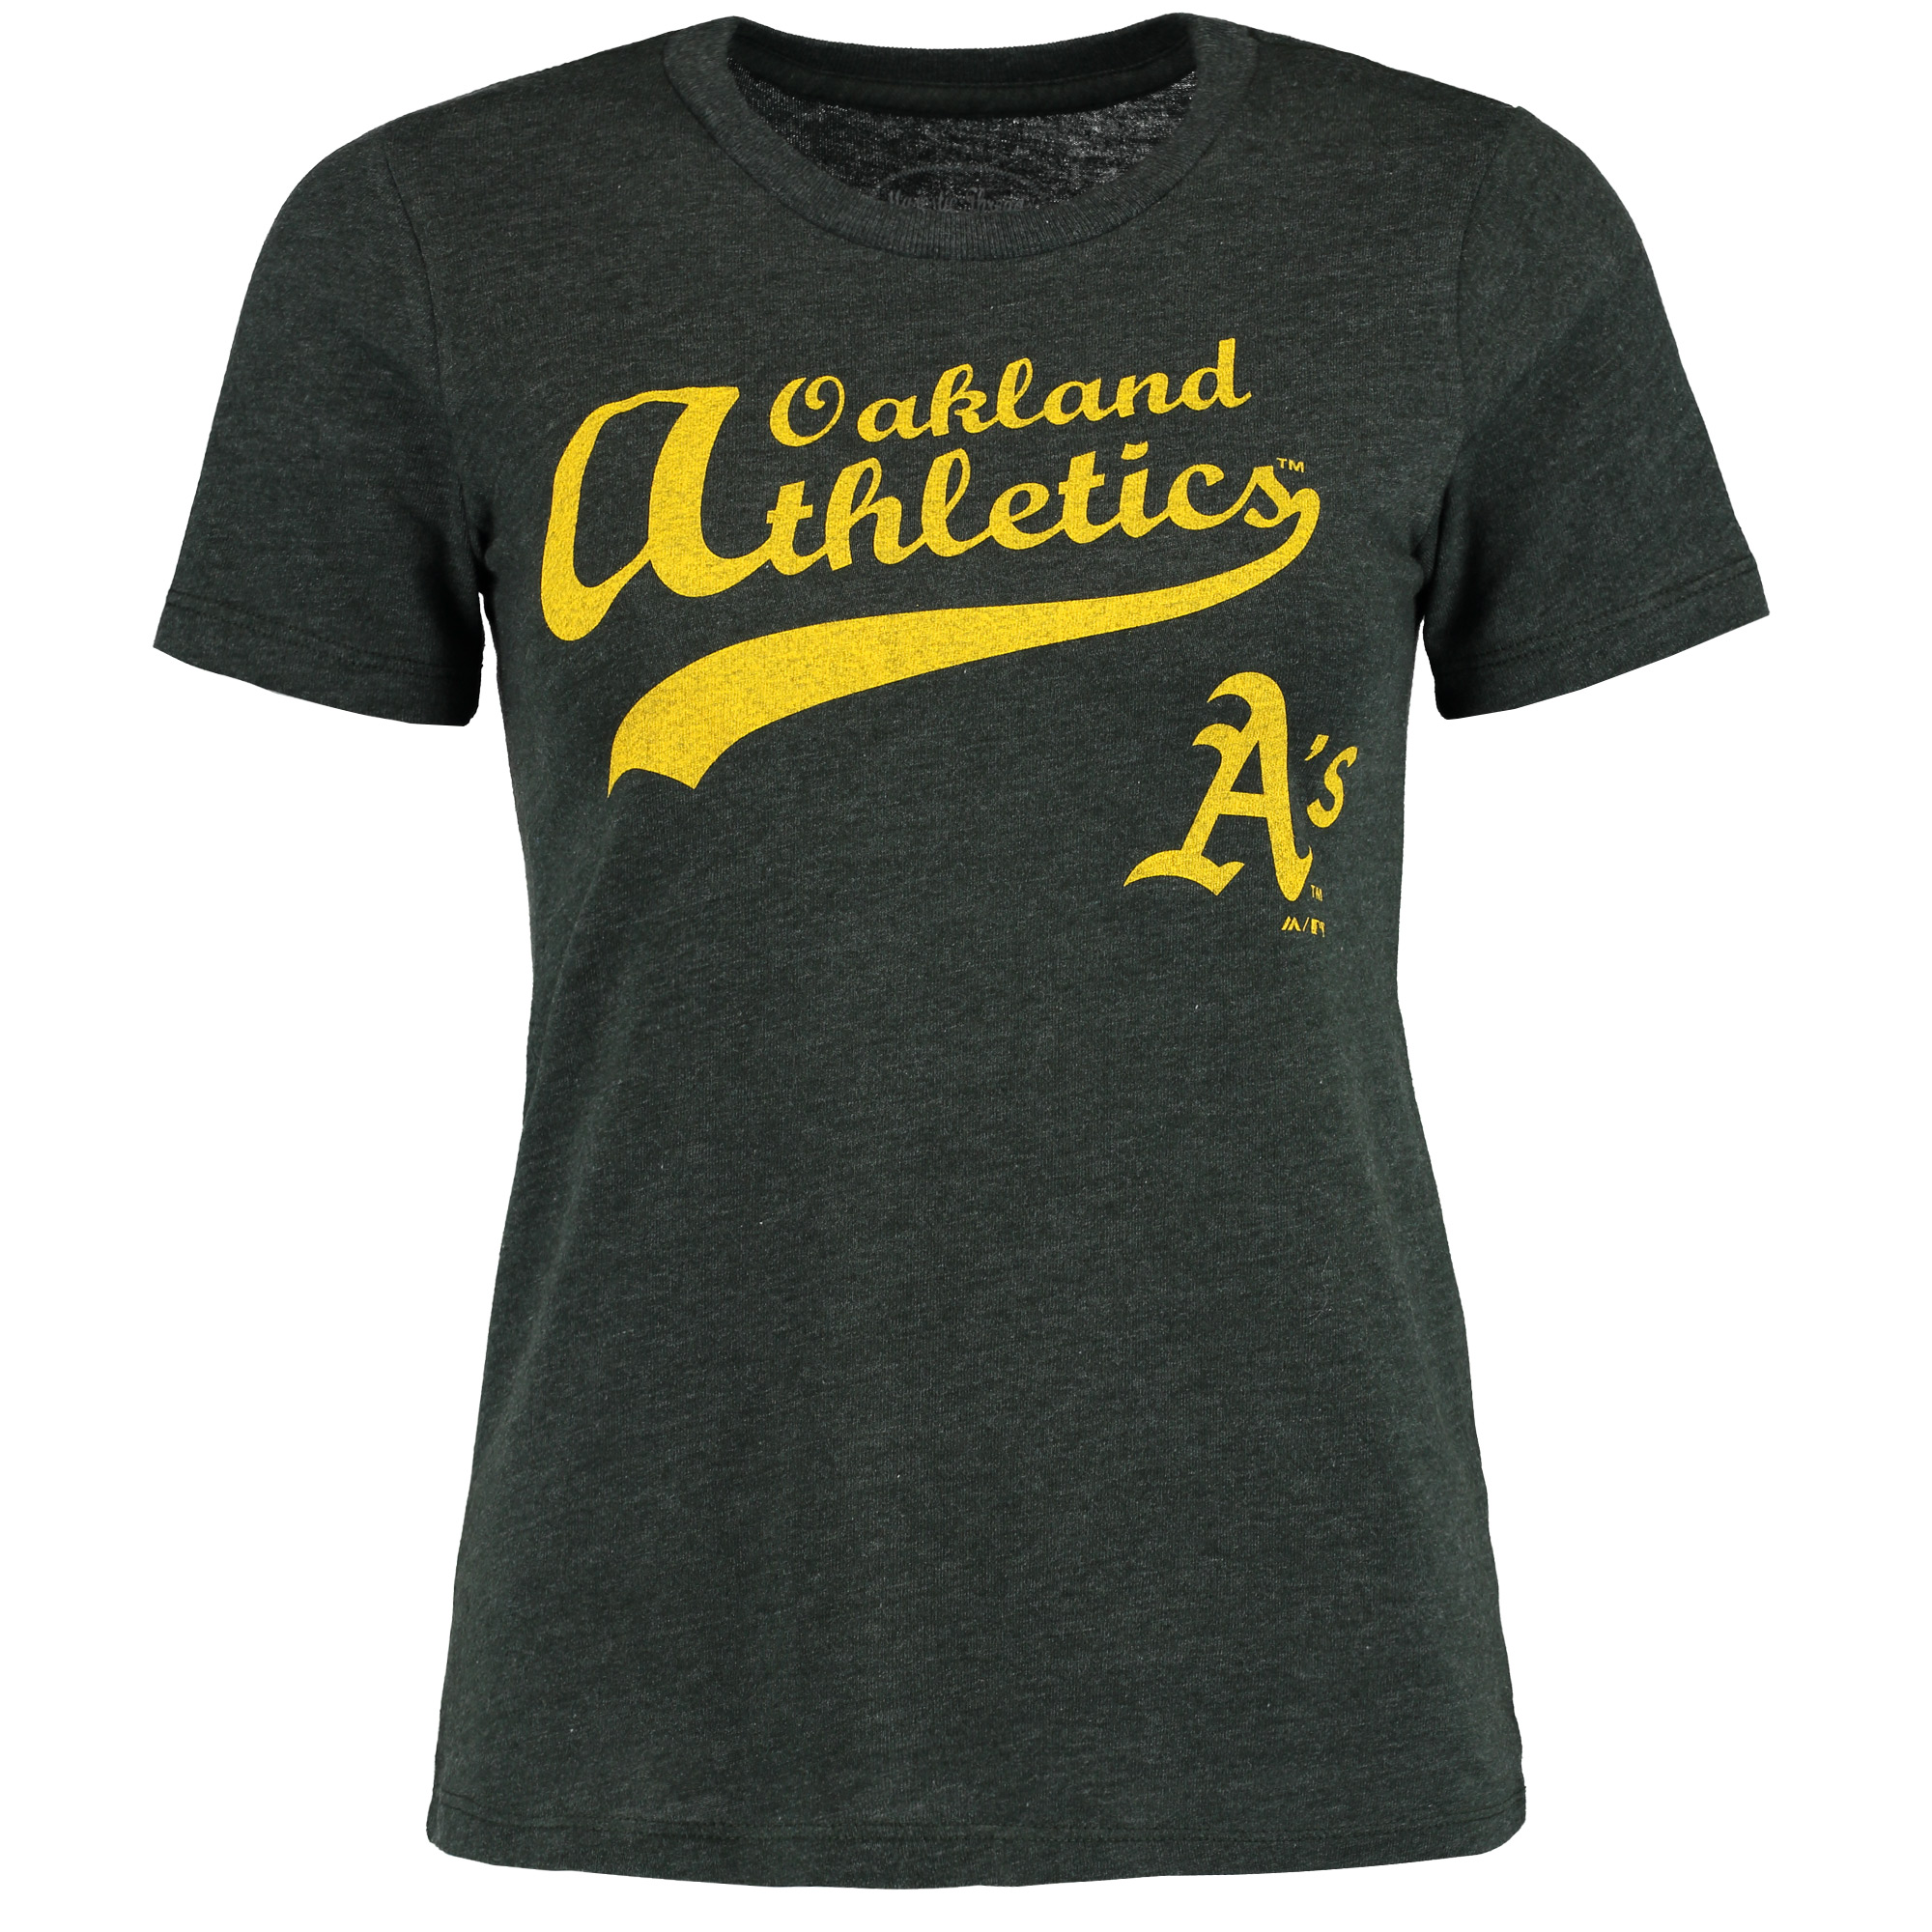 Oakland Athletics Majestic Threads Women's Front and Back Tri-Blend T-Shirt - Green